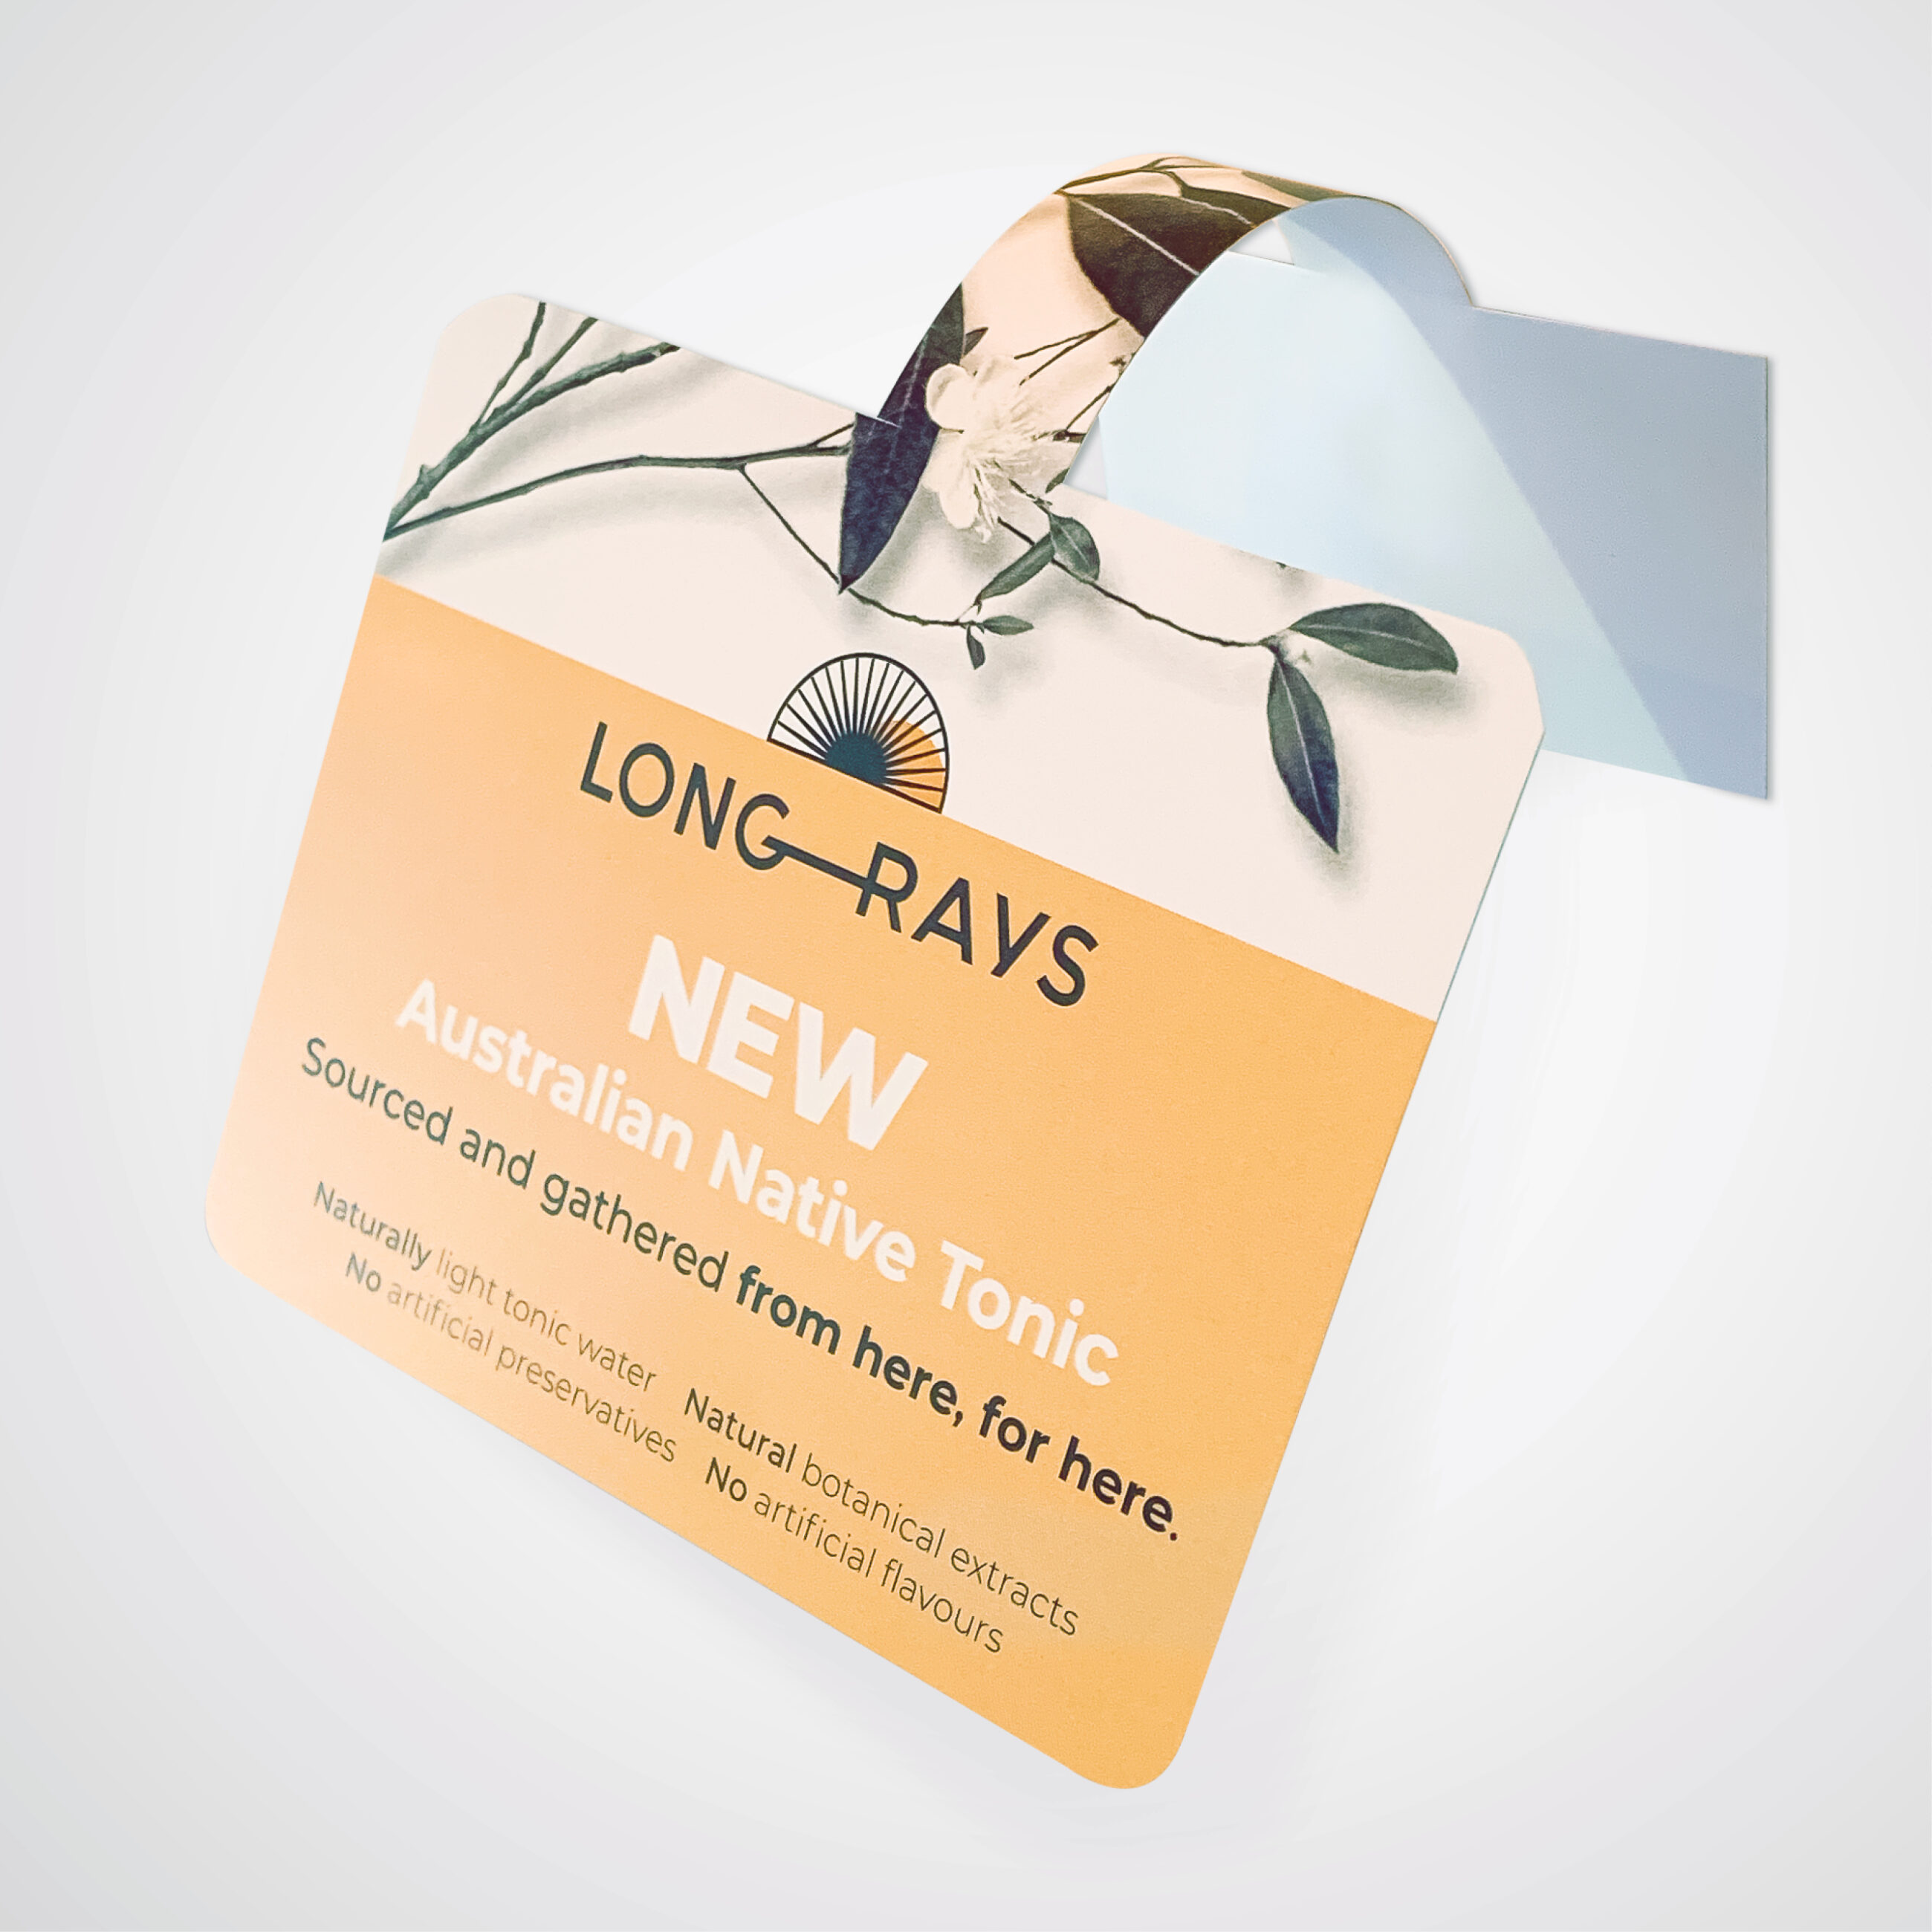 Long Rays Native Tonic advertisement